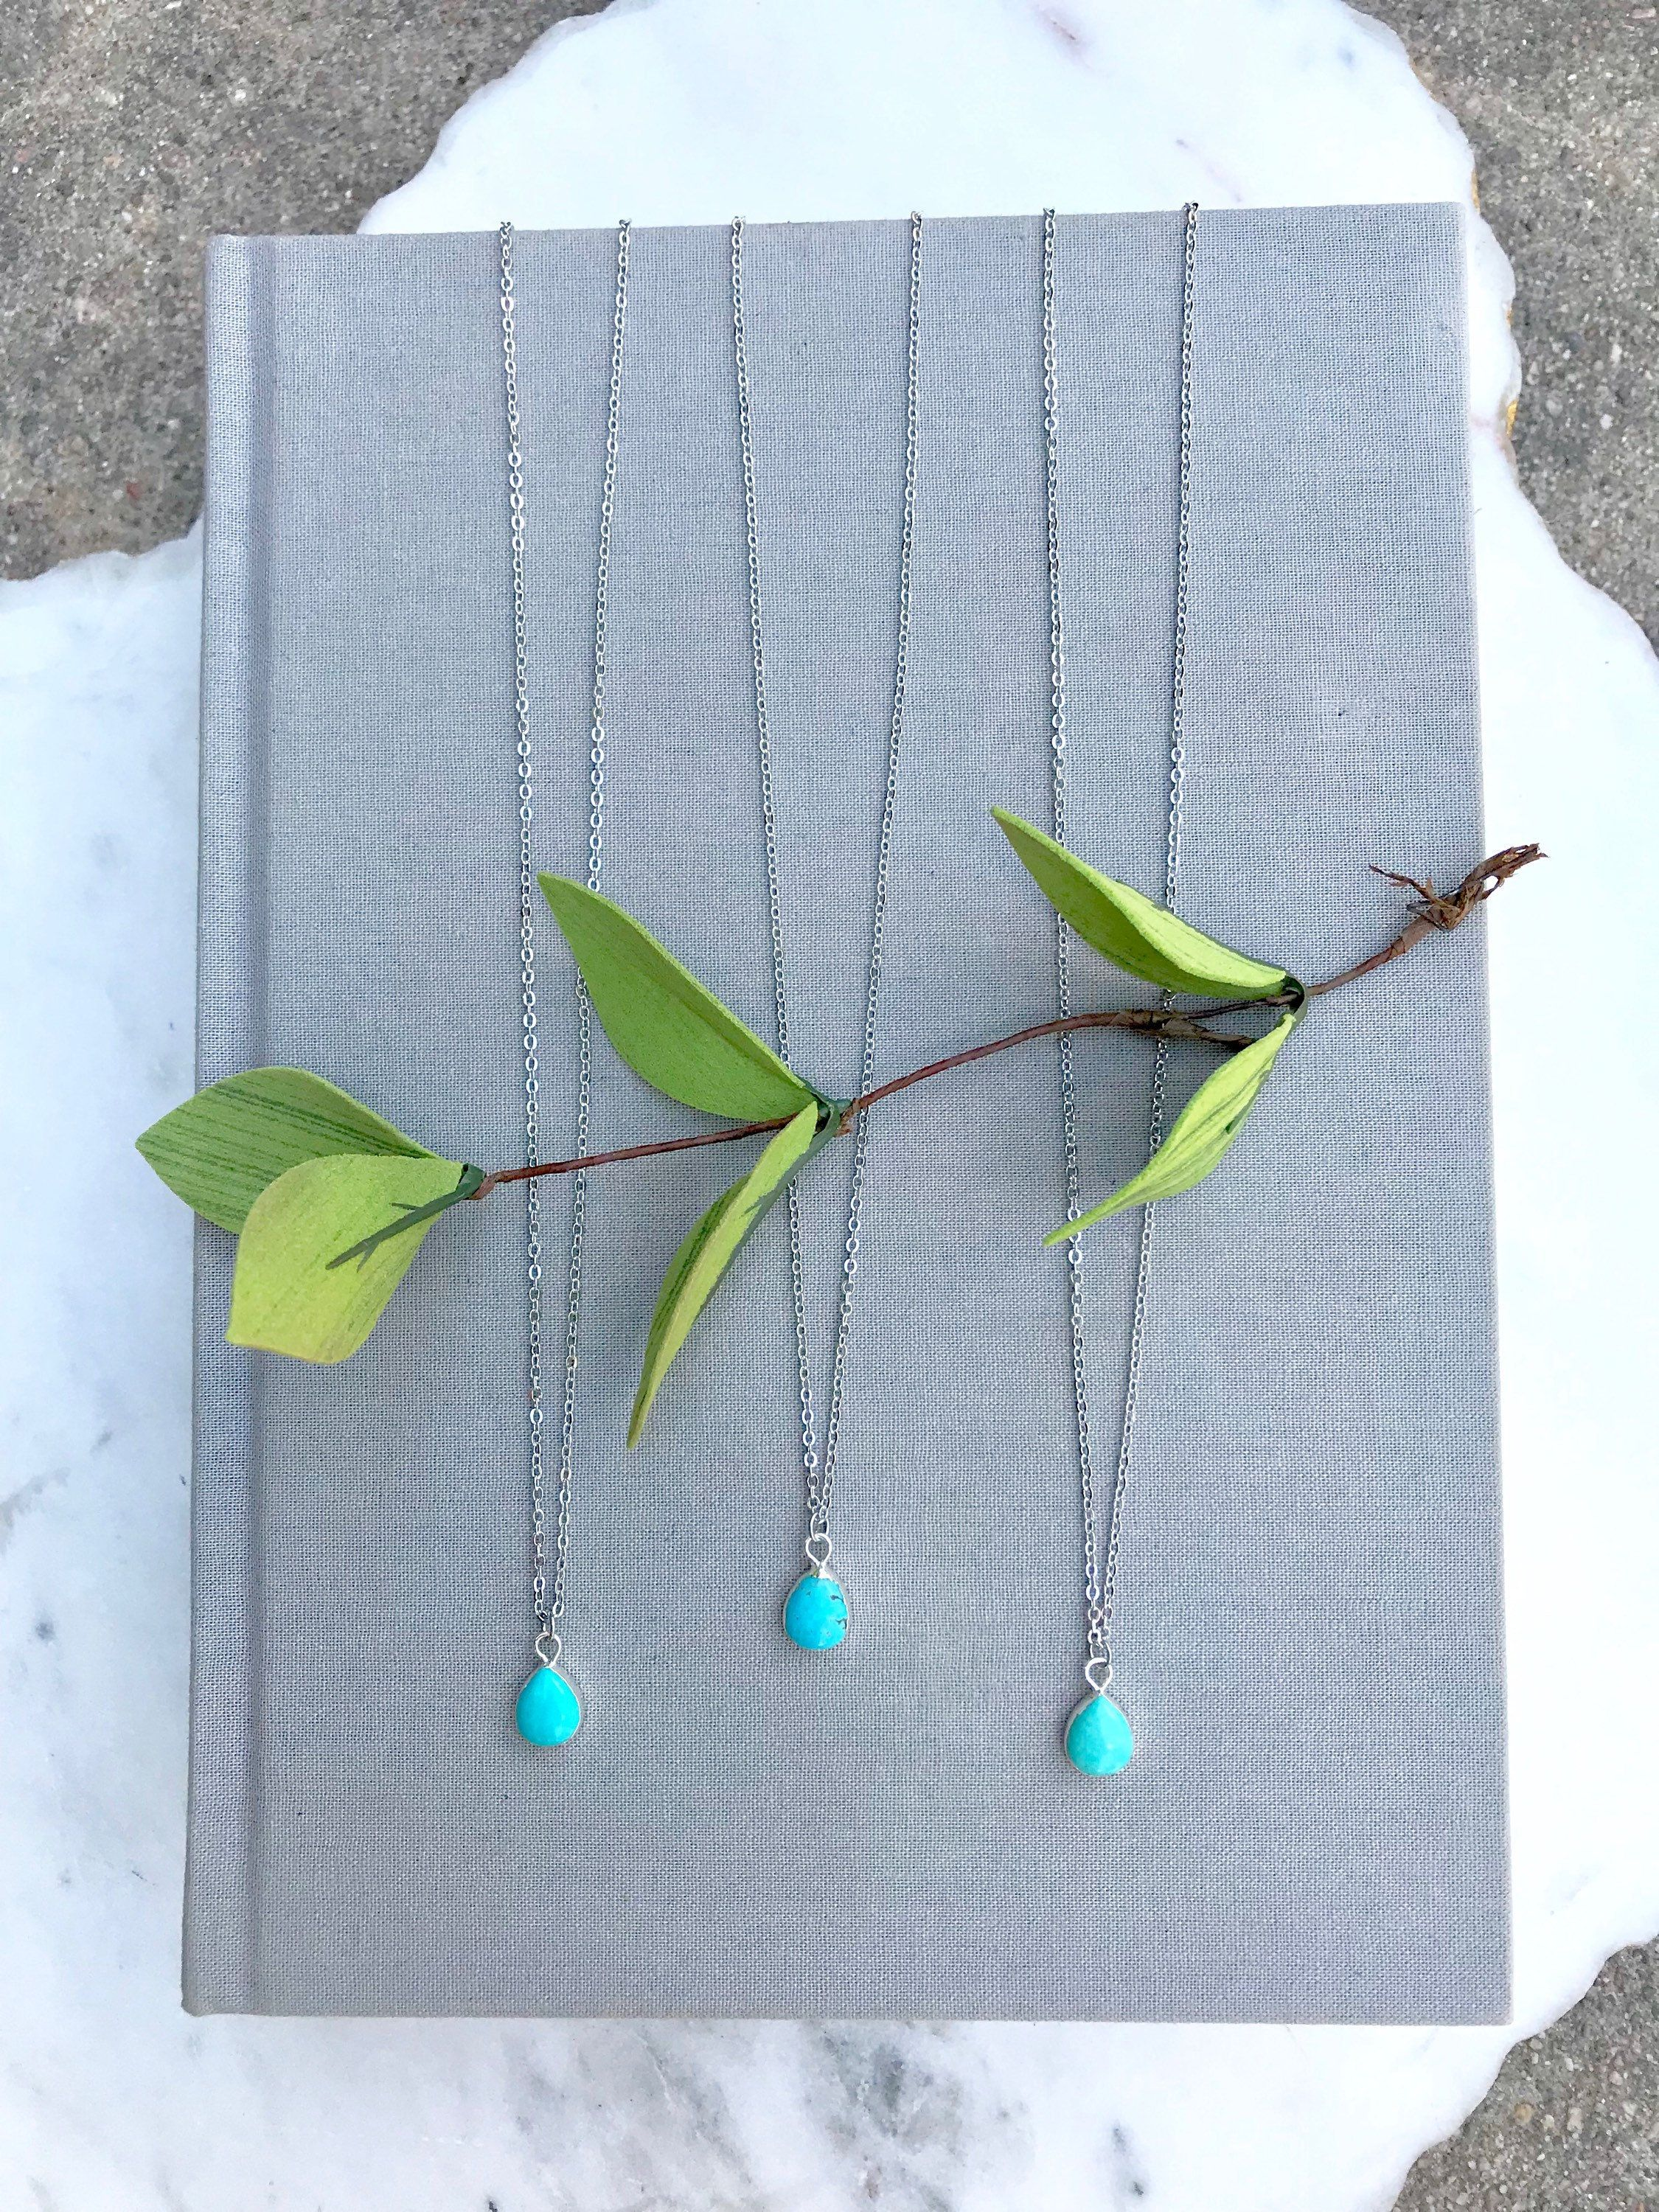 Turquoise Necklace Sterling Silver Small Teardrop Turquoise Silver Necklace 14k Silver Plate Boho Tiny Raw Turquoise Pendant Bridesmaid Gift